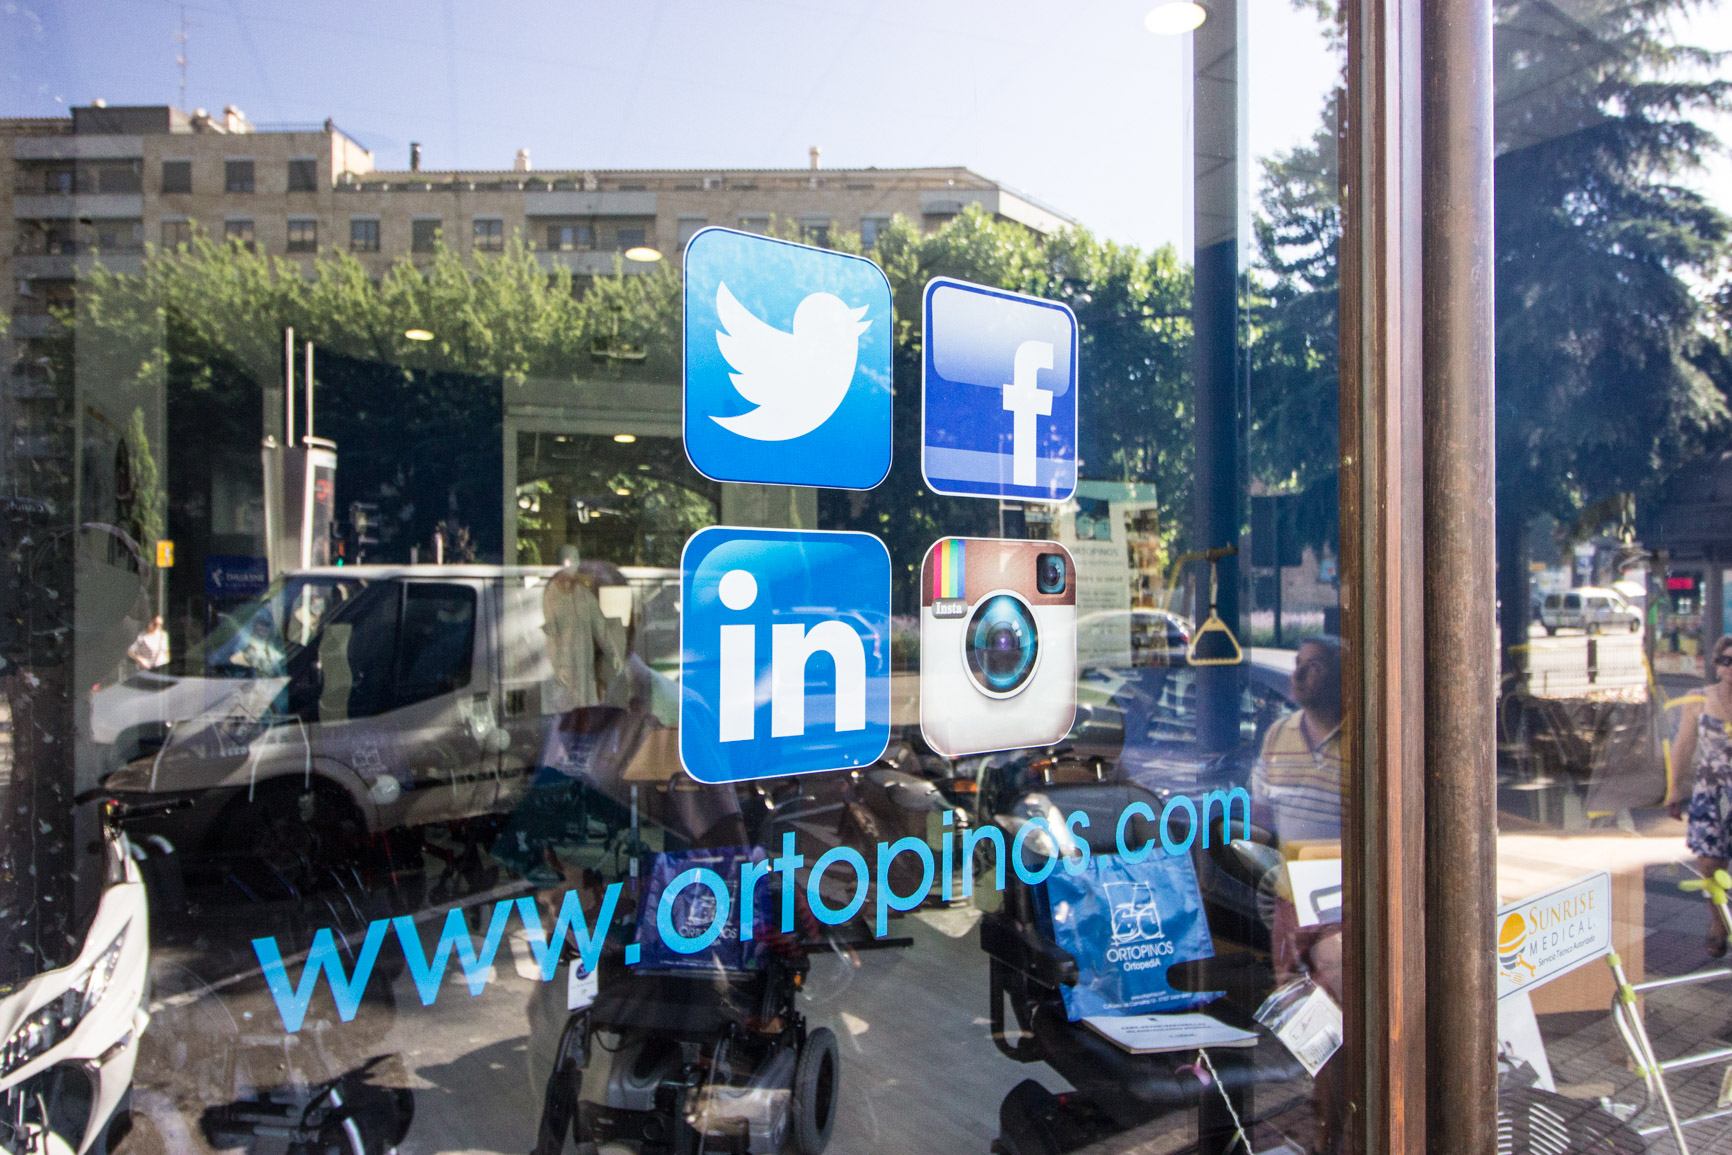 Redes sociales Ortopinos: Twitter, Facebook, LinkedIn e Instagram